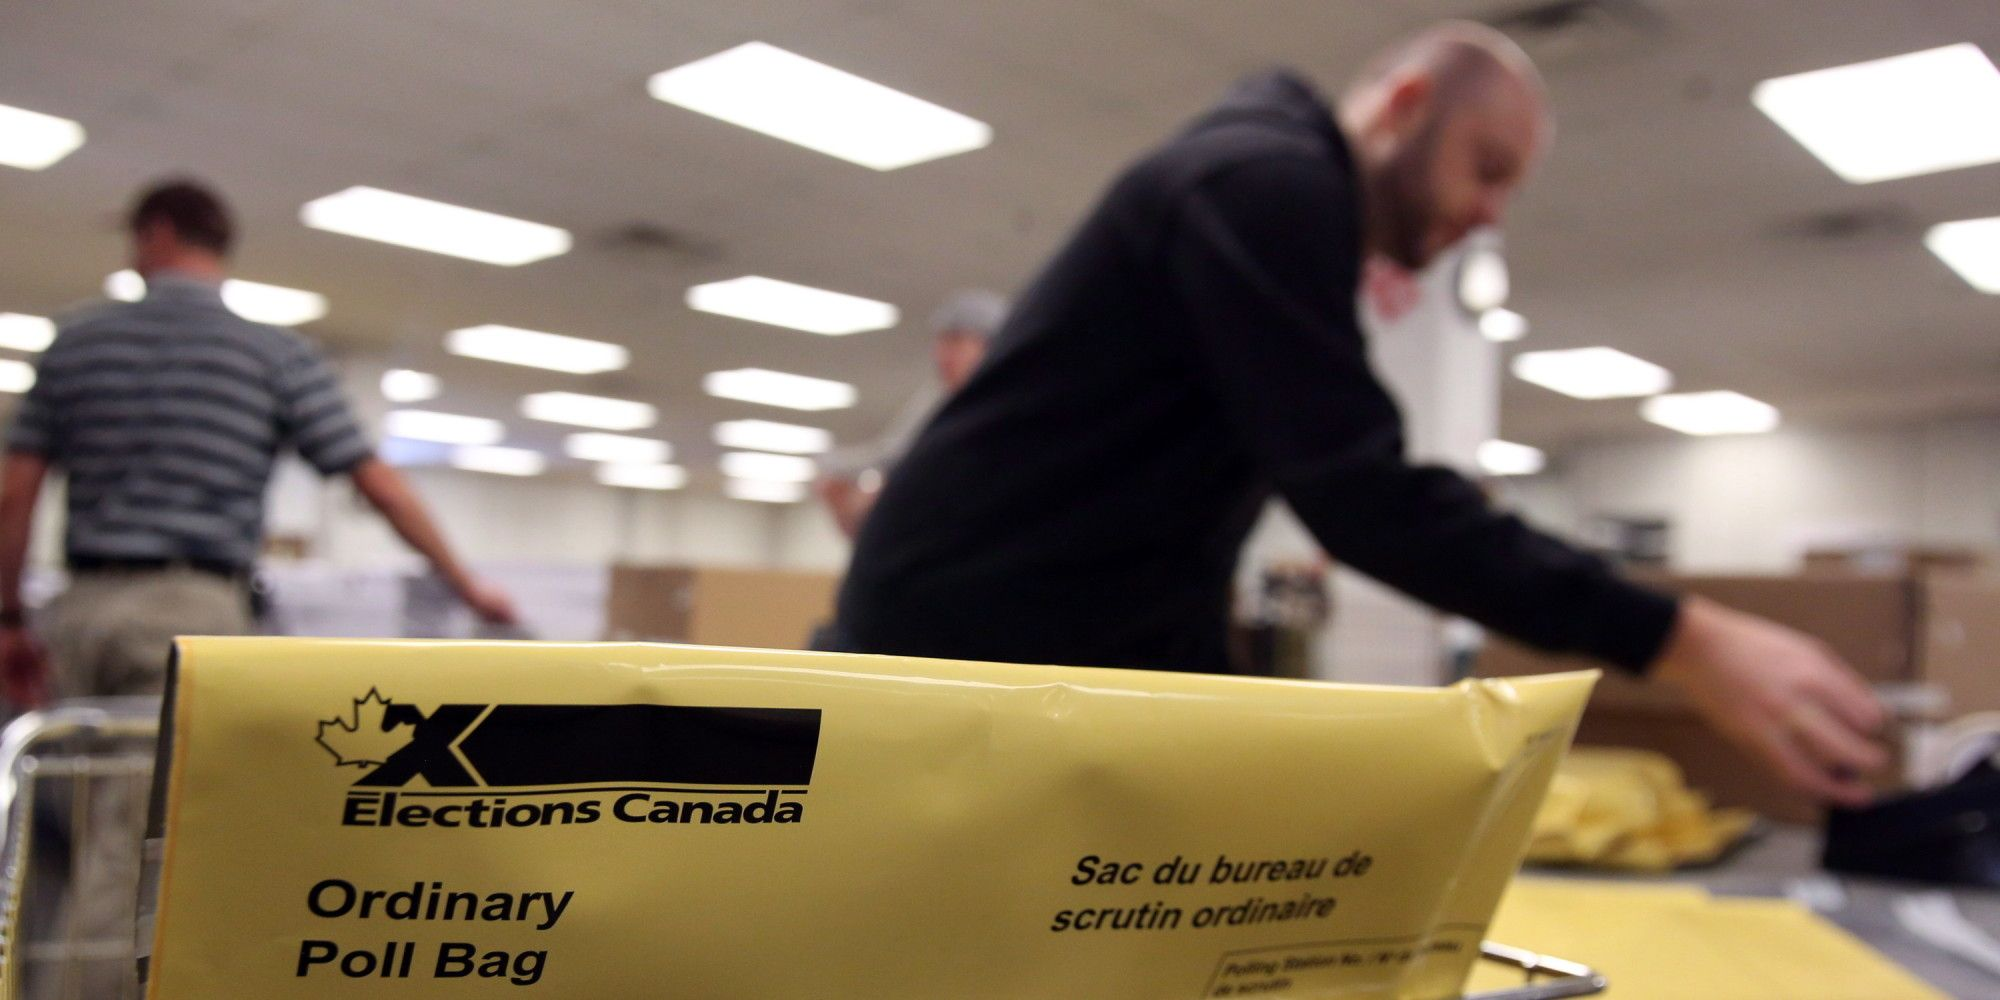 8. Trudeau Has Promised To Reform Elections Canada